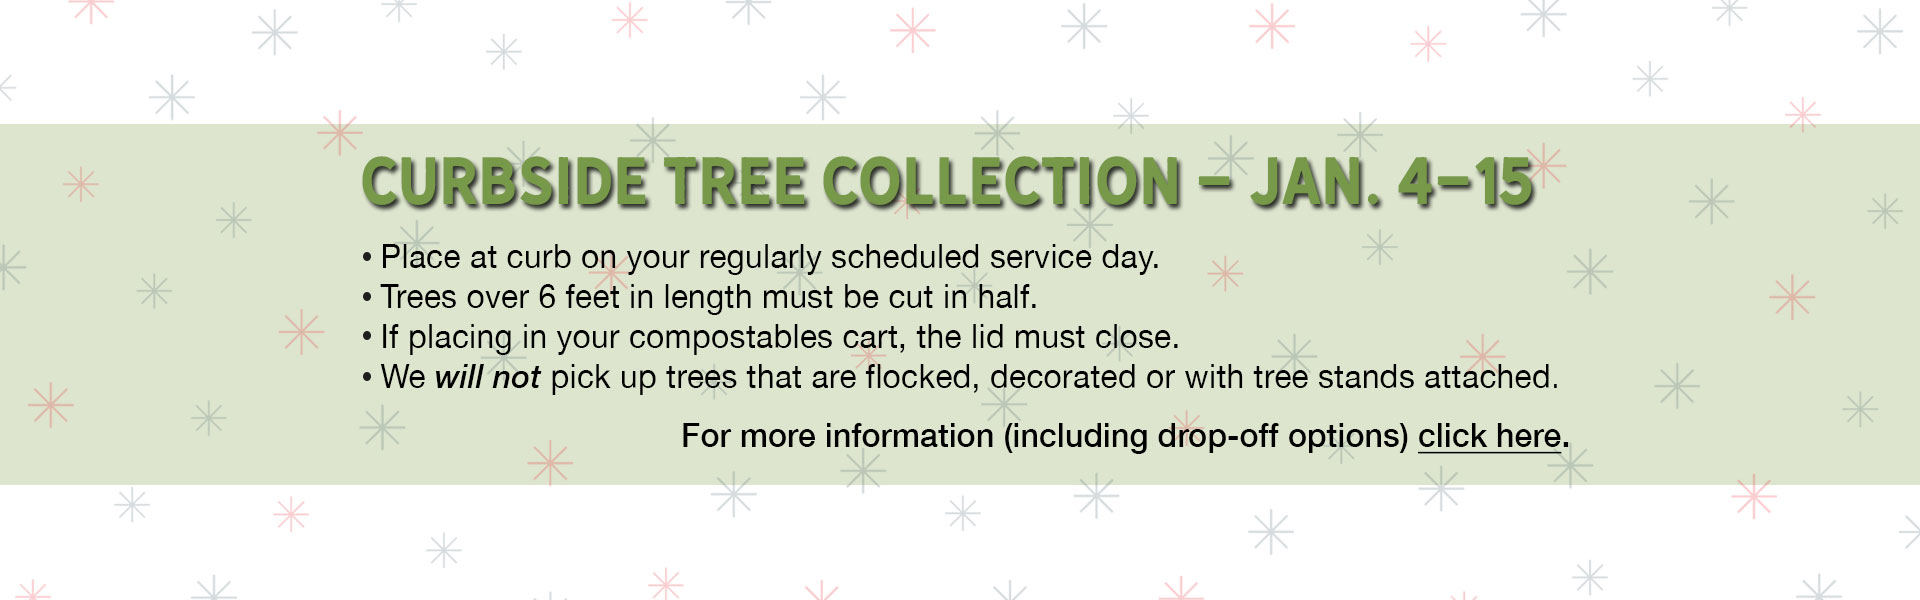 2021 Tree Collection